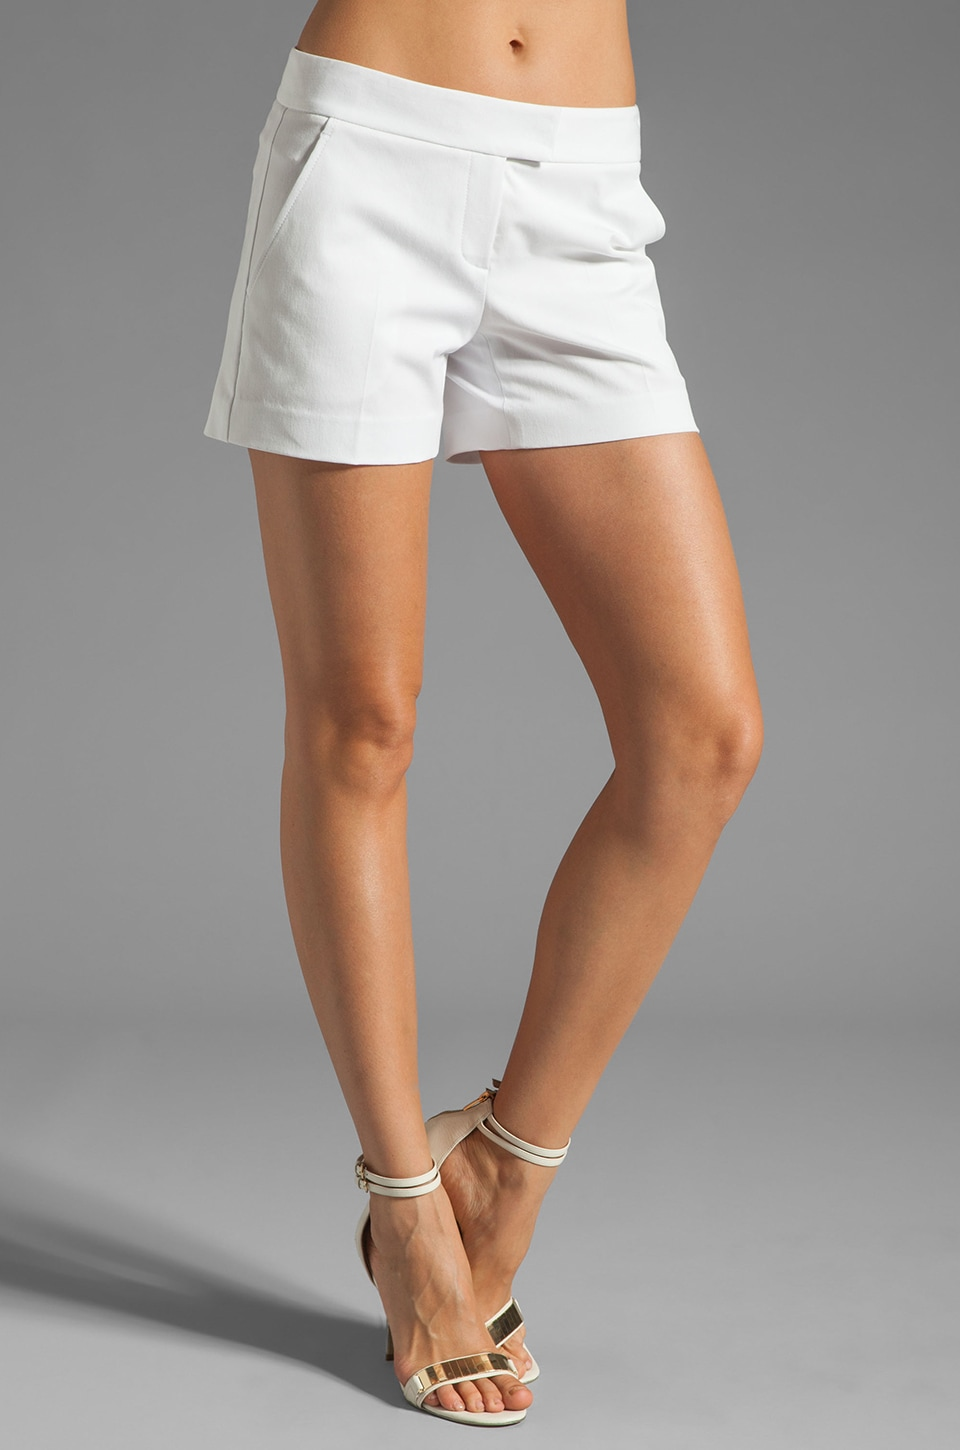 Theory Bistretch 2 Lynie NB Twill Shorts in White